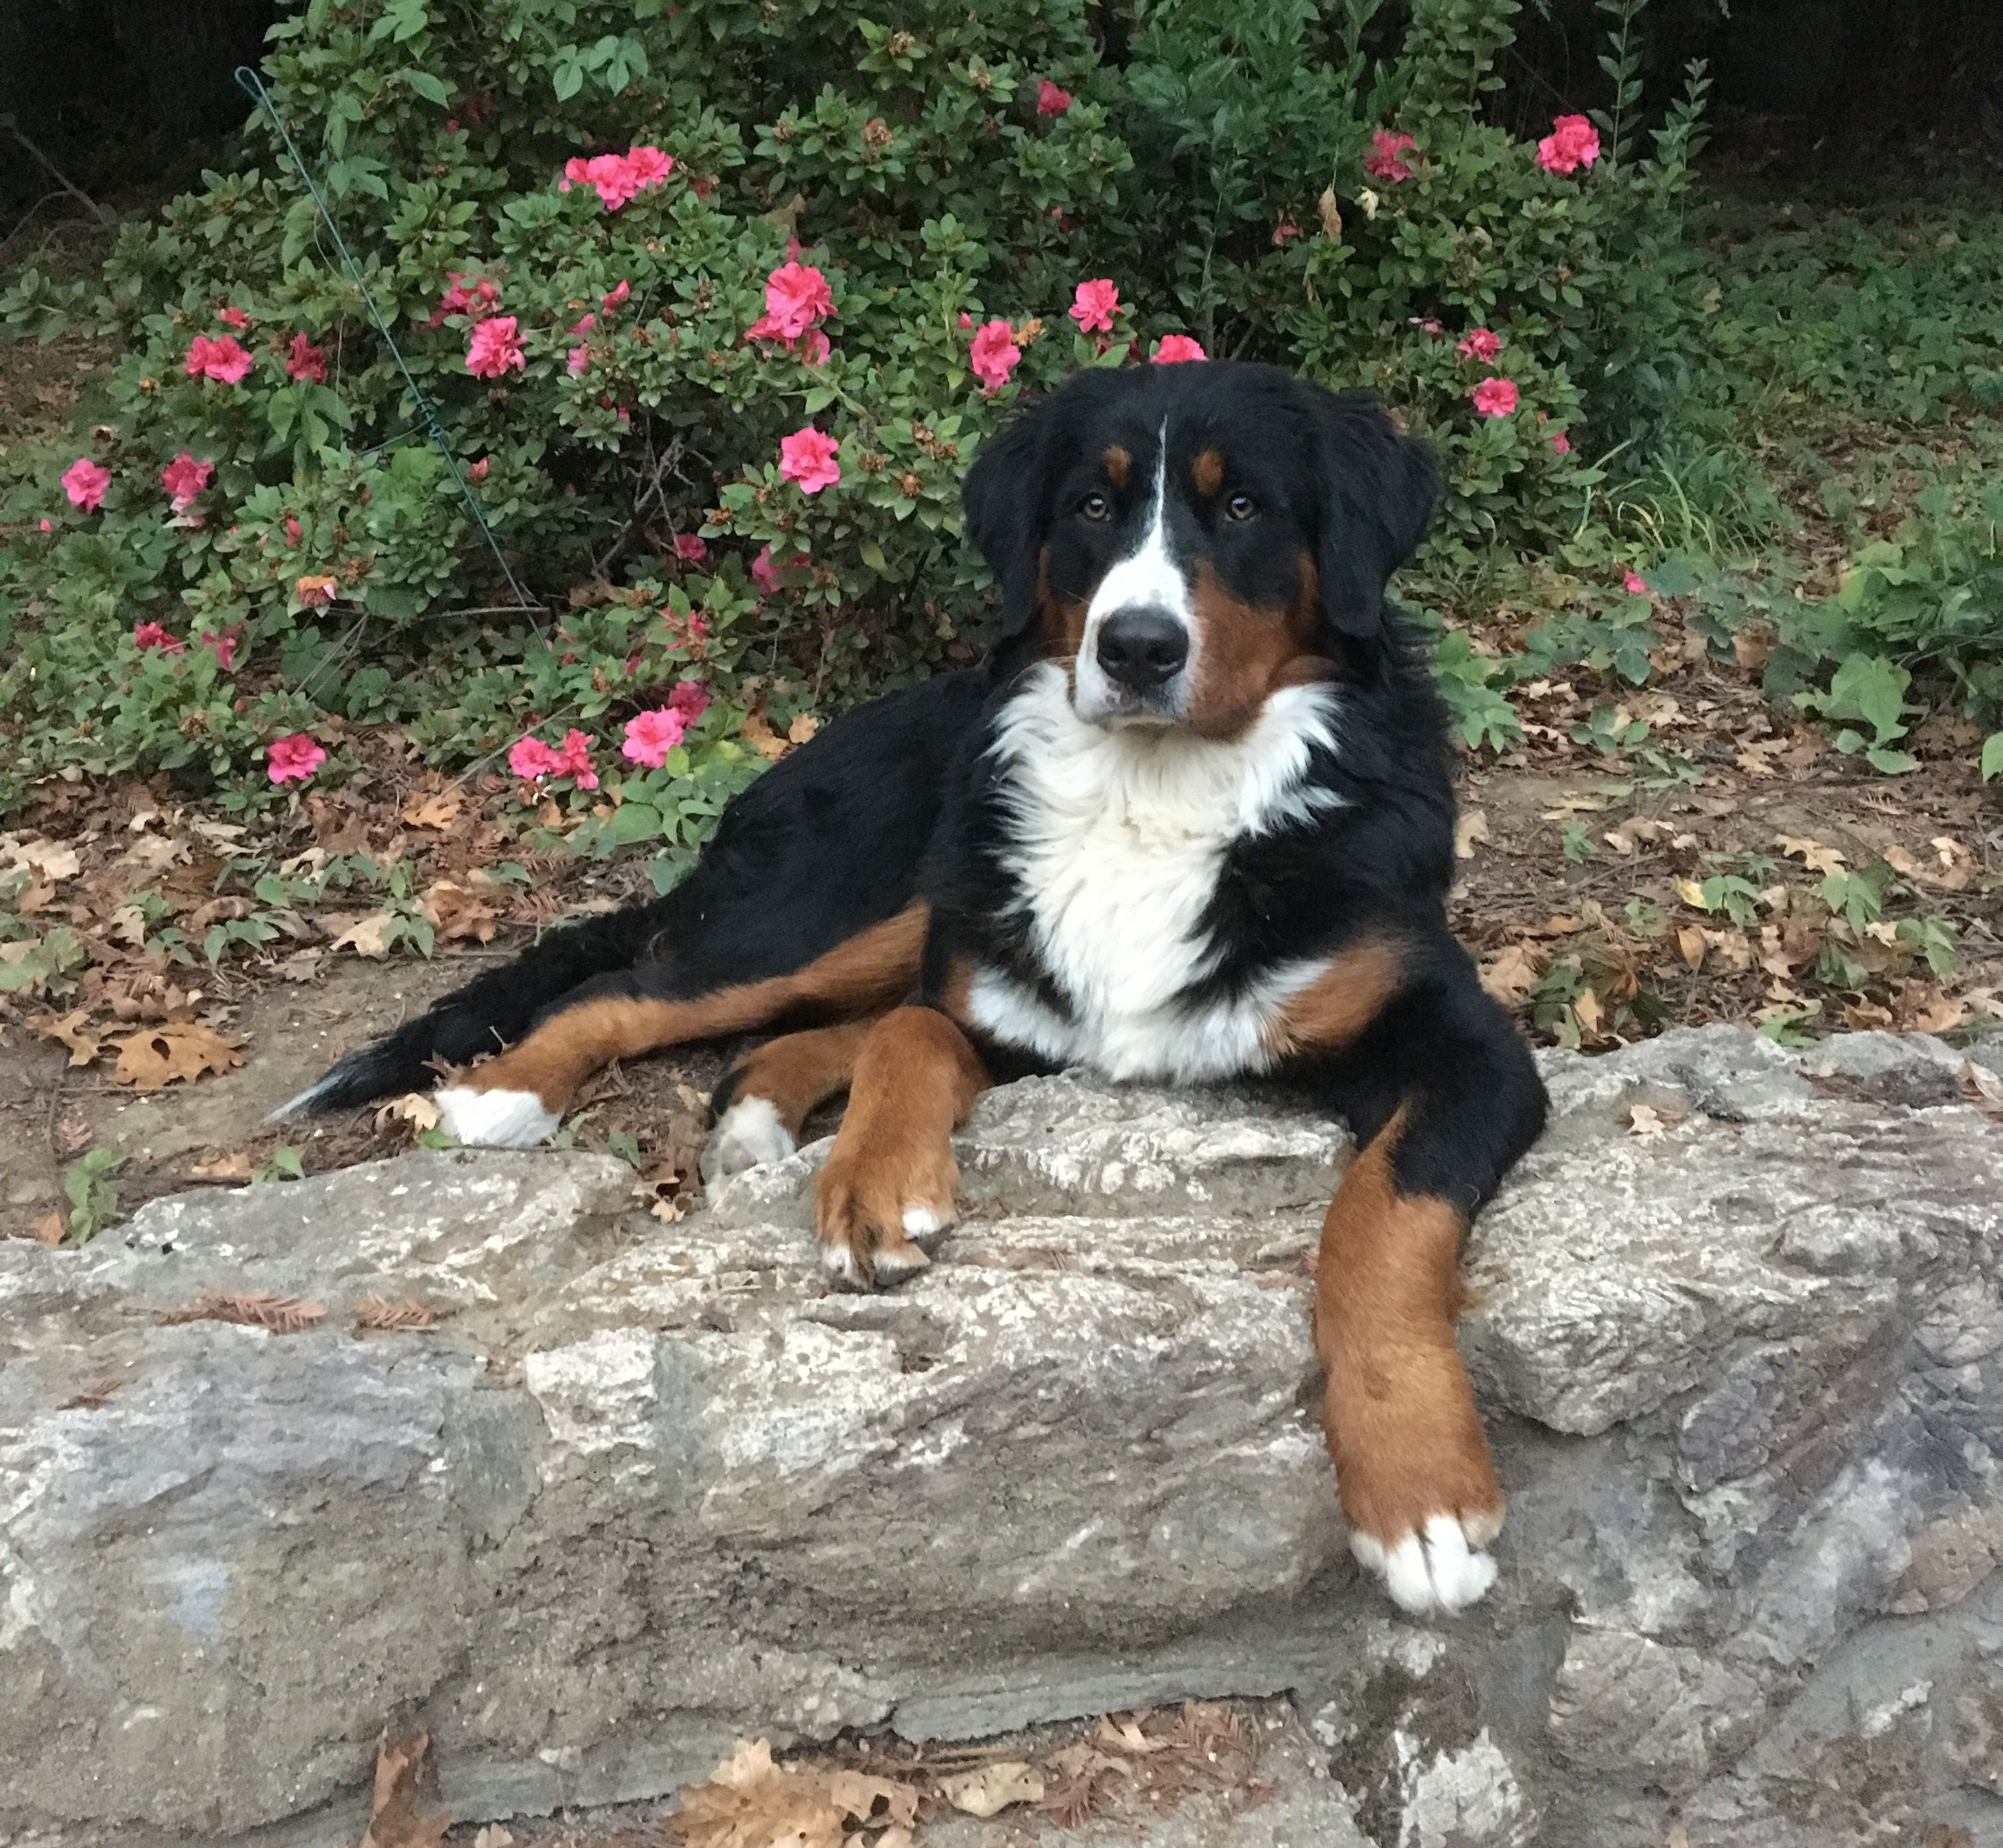 Luna, a 1-year-old Bernese mountain dog who had hip replacement surgery at UC Davis veterinary hospital